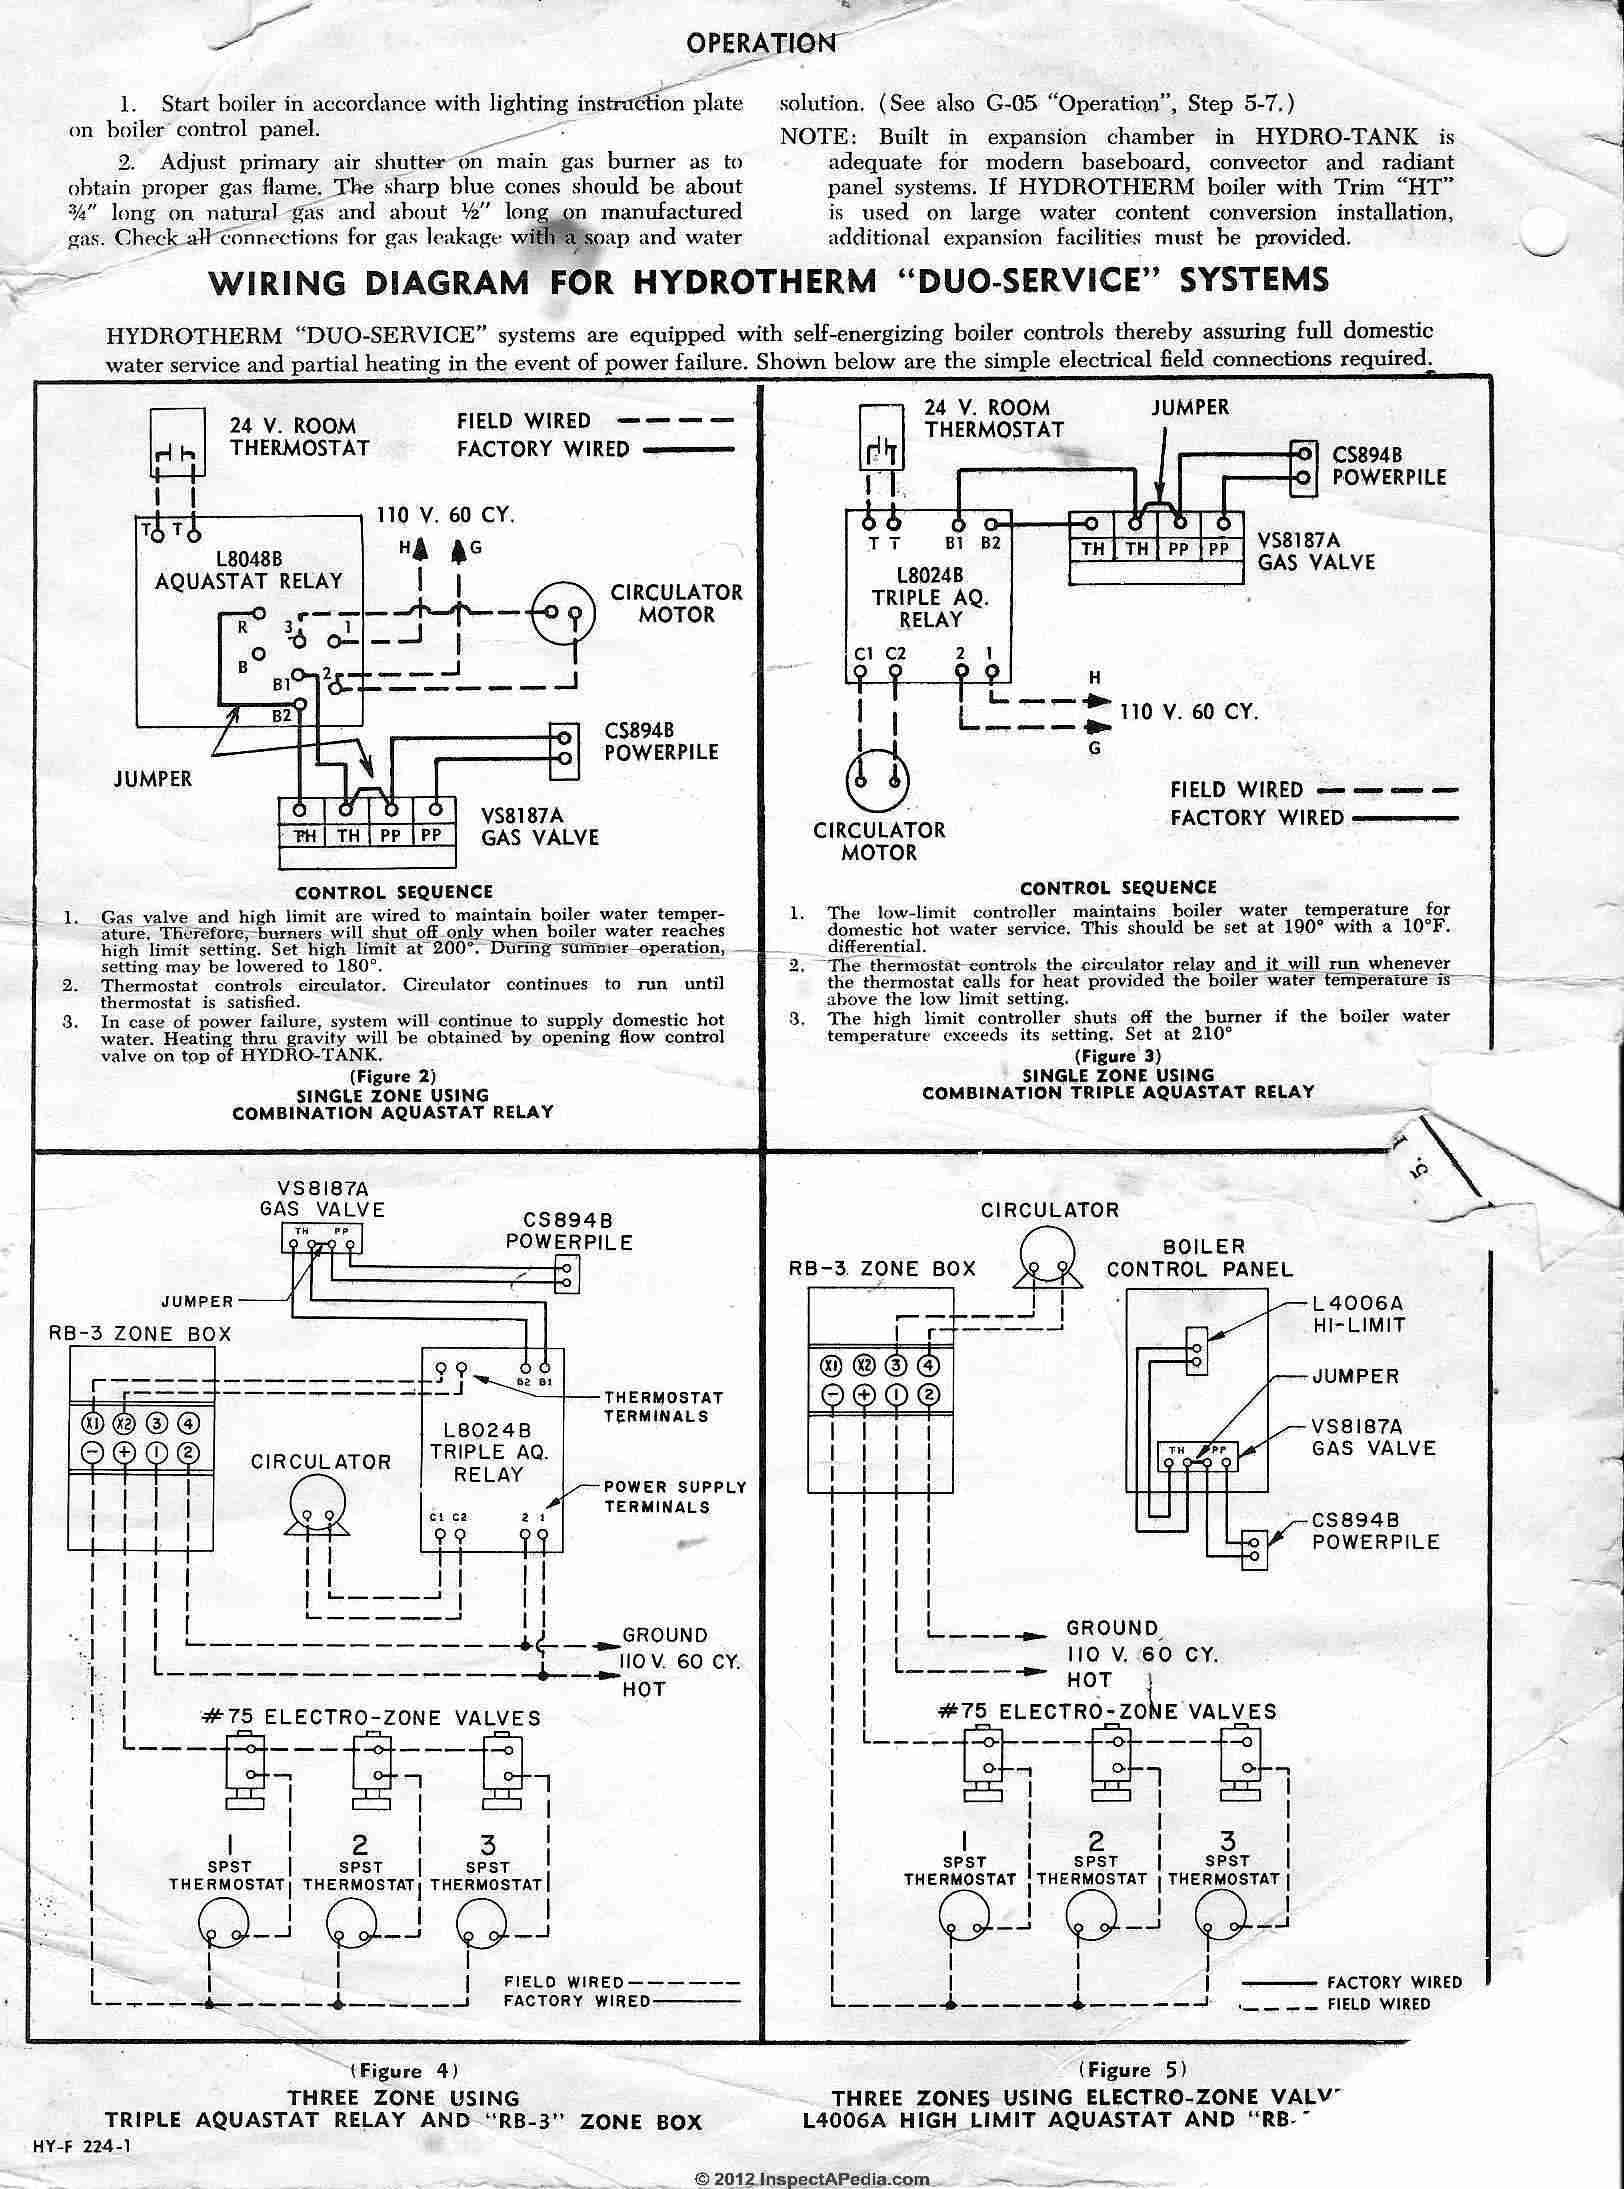 Wondrous Honeywell L8148E1265 Aquastat Wiring Diagram Get Free Image About Wiring Cloud Favobieswglorg